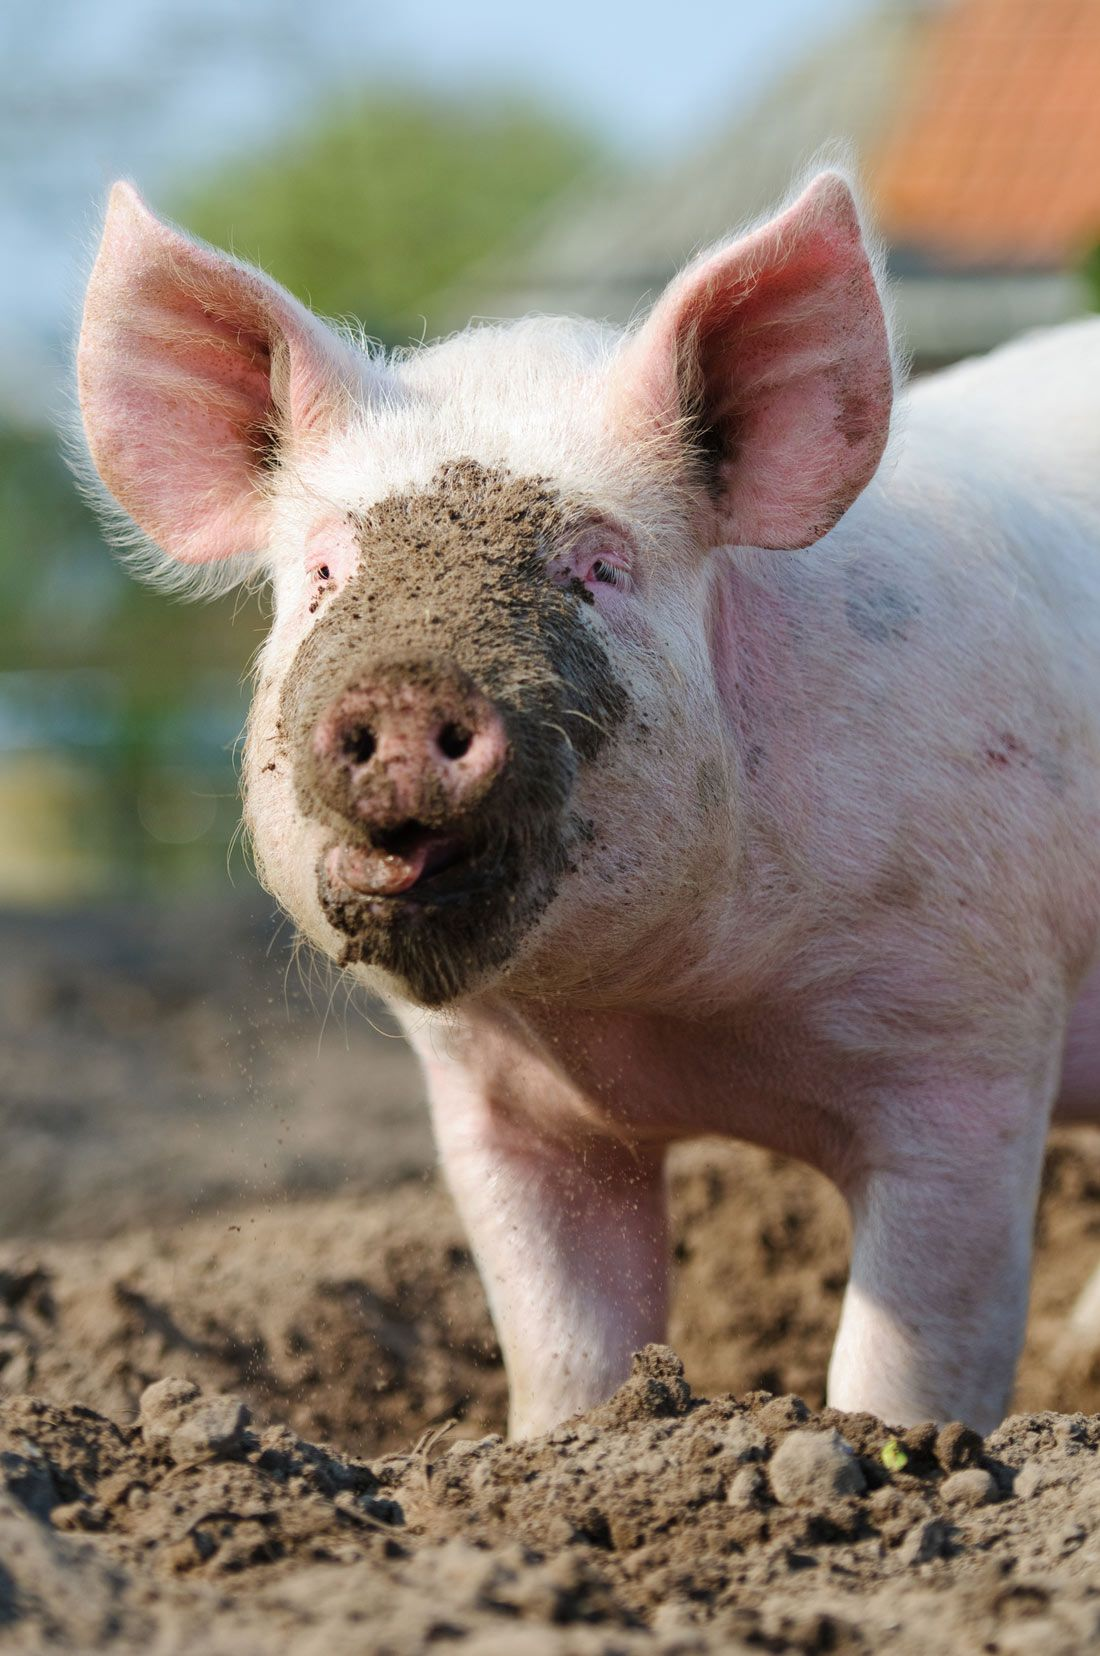 Why Pigs Love Mud | Live Science